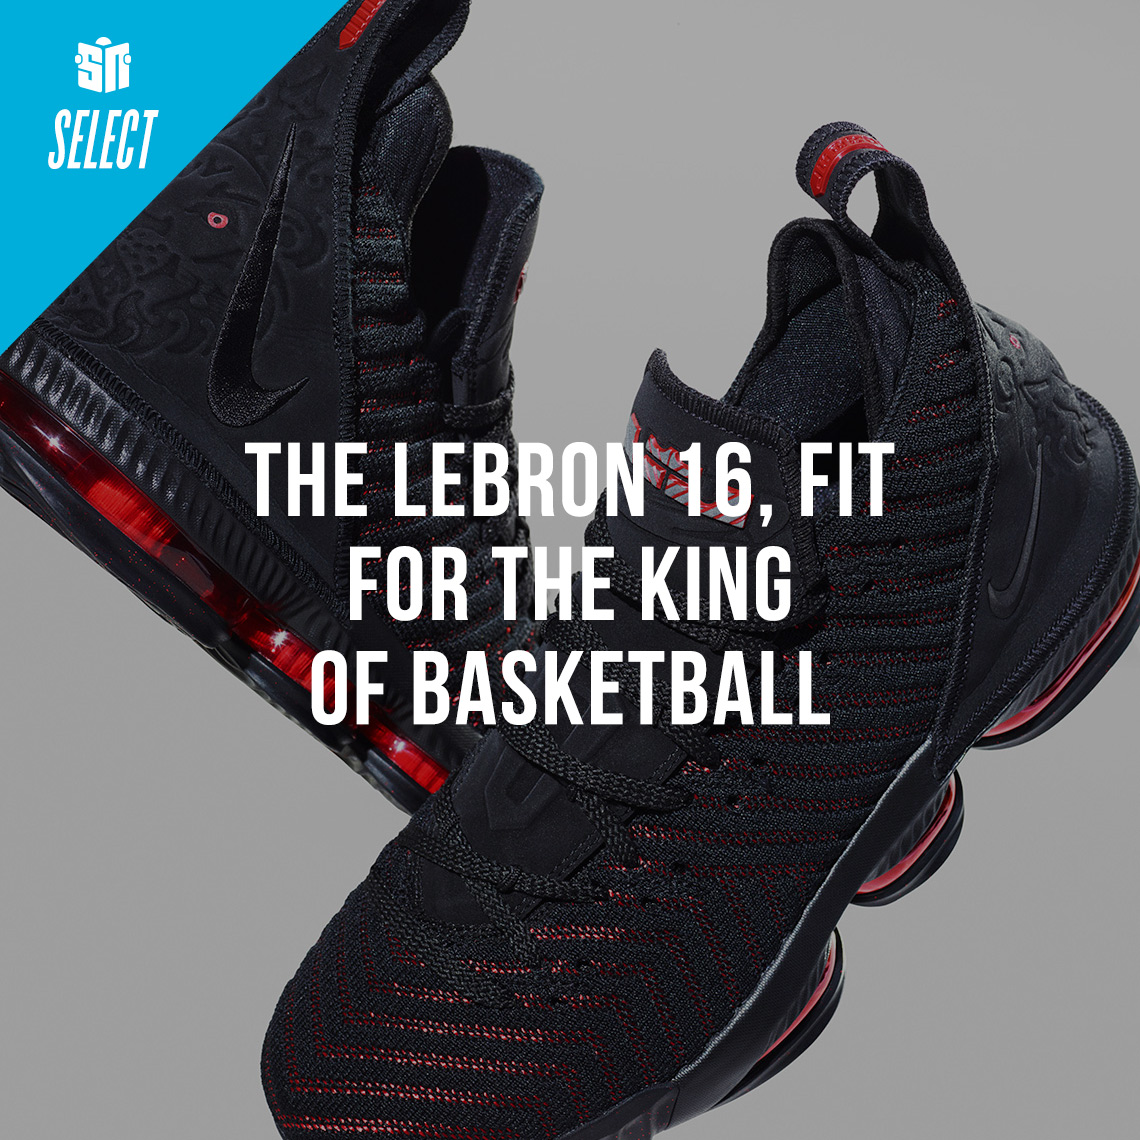 The Nike LeBron 16, Fit For The King Of Basketball